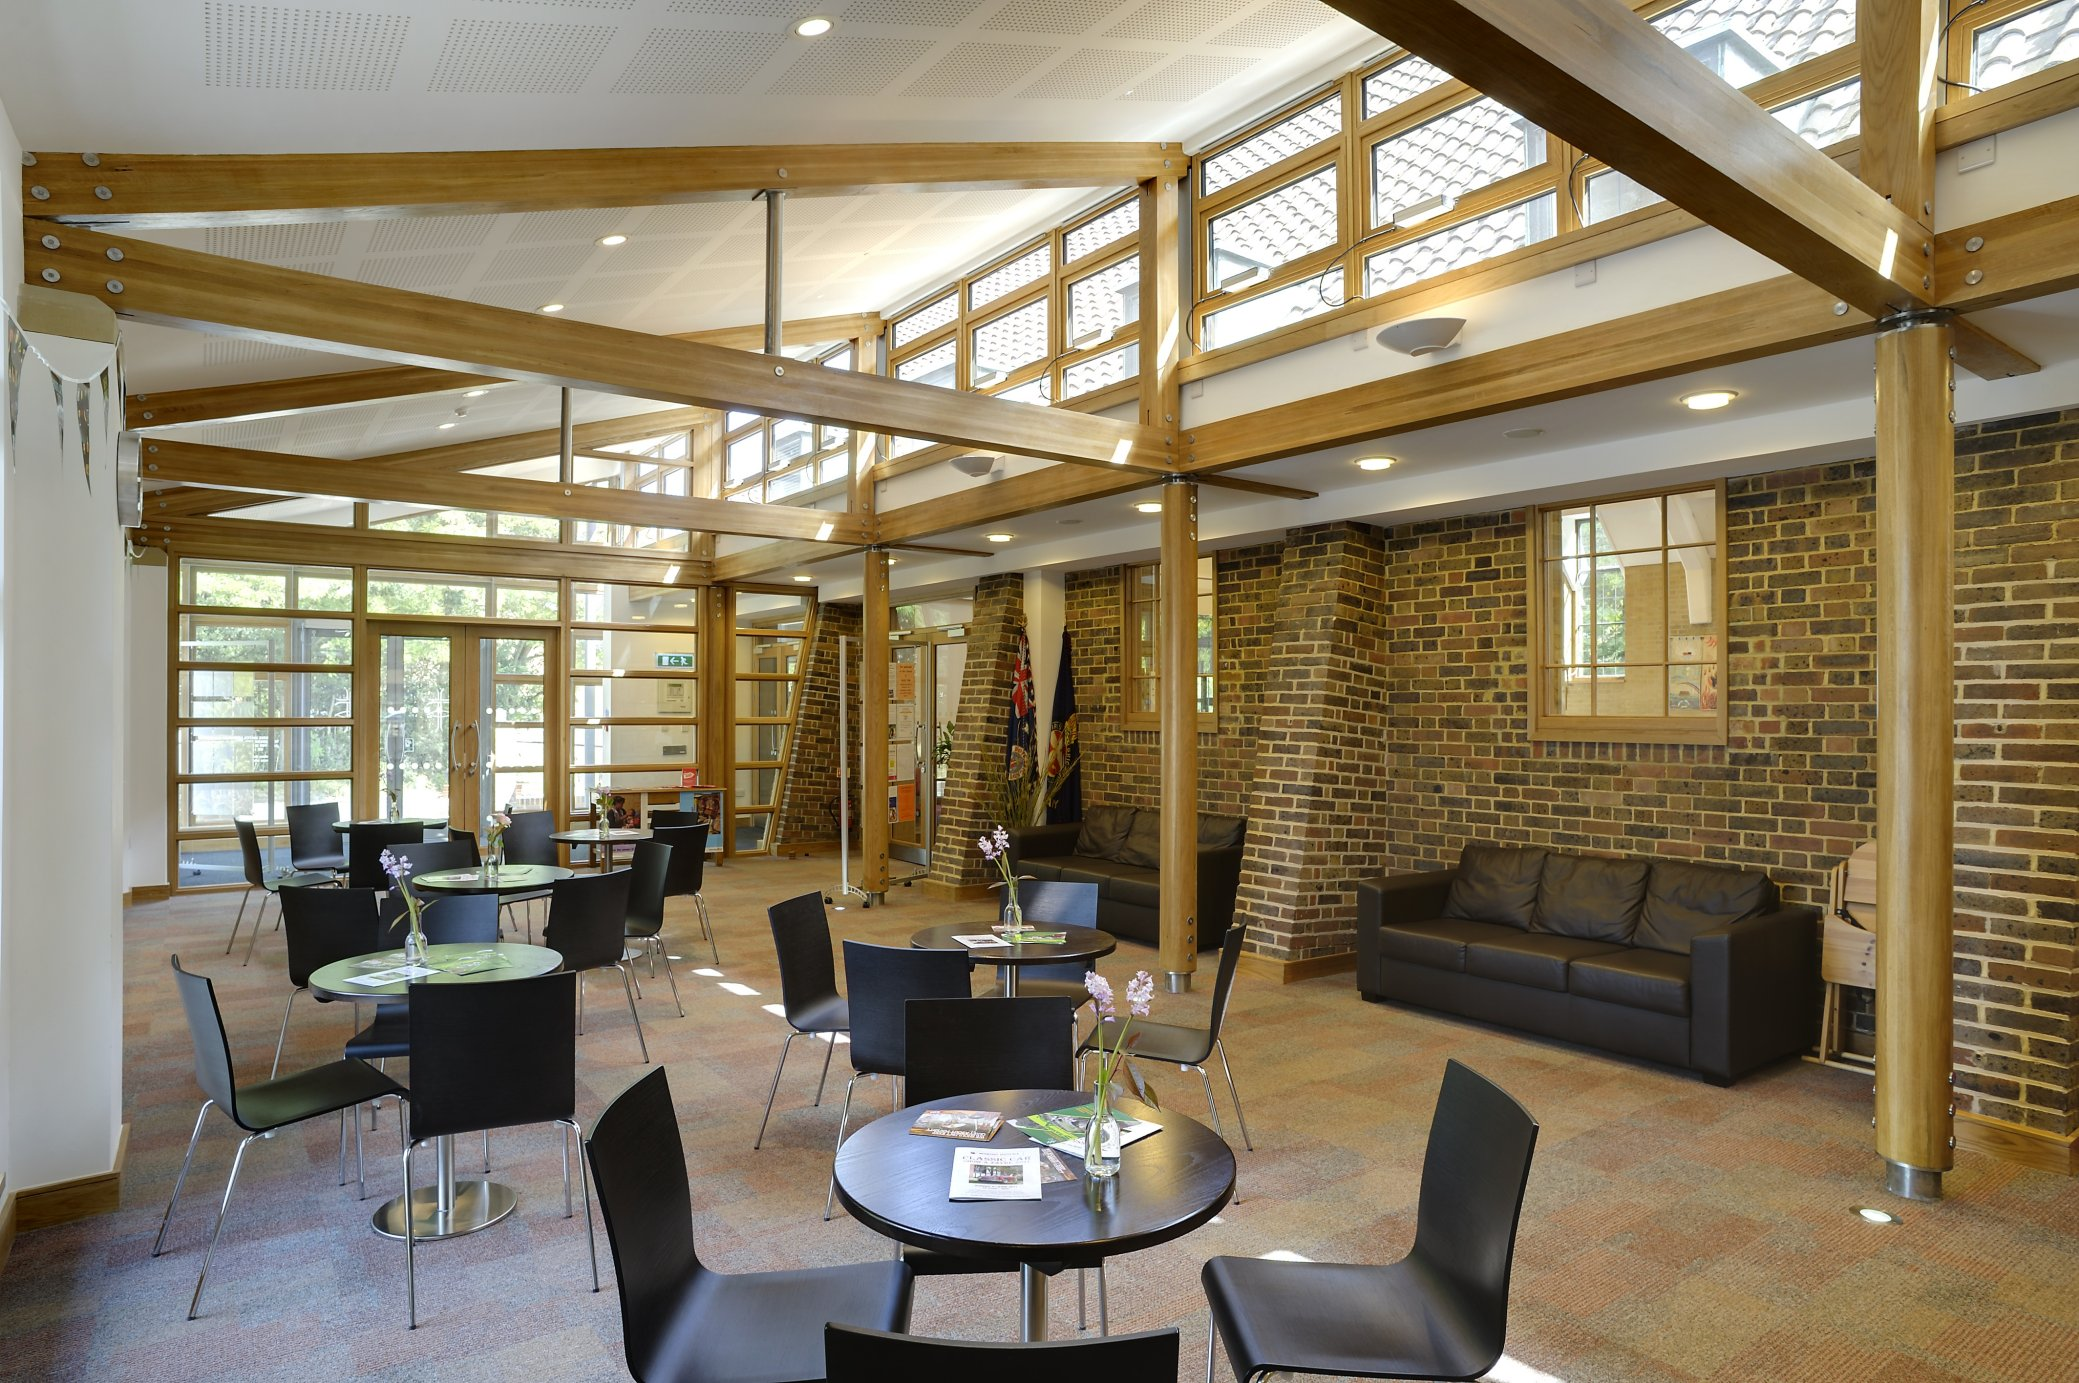 Woking URC Combining Traditional And Modern Design Allen